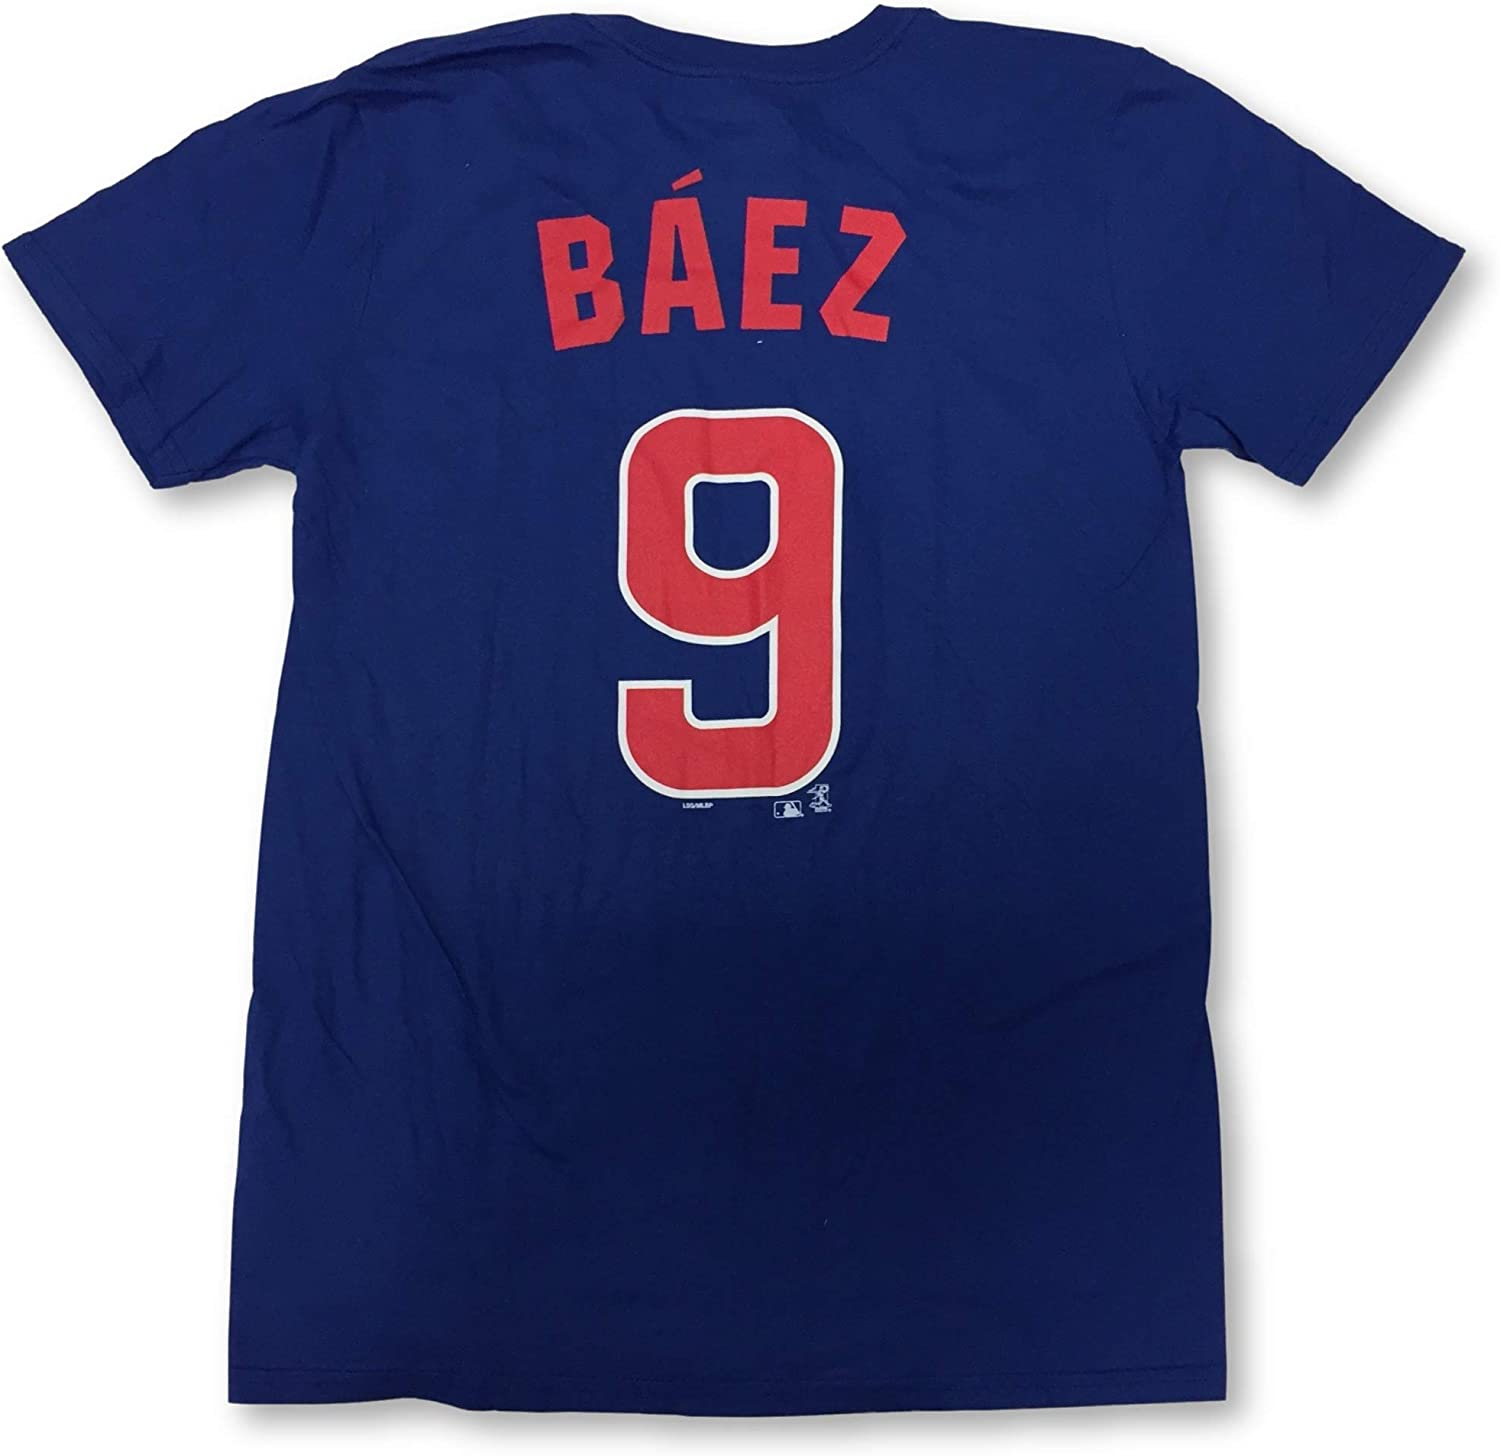 Majestic Javier Báez Adult Men's #9 Player Name and Number Crew Neck Jersey T-Shirt